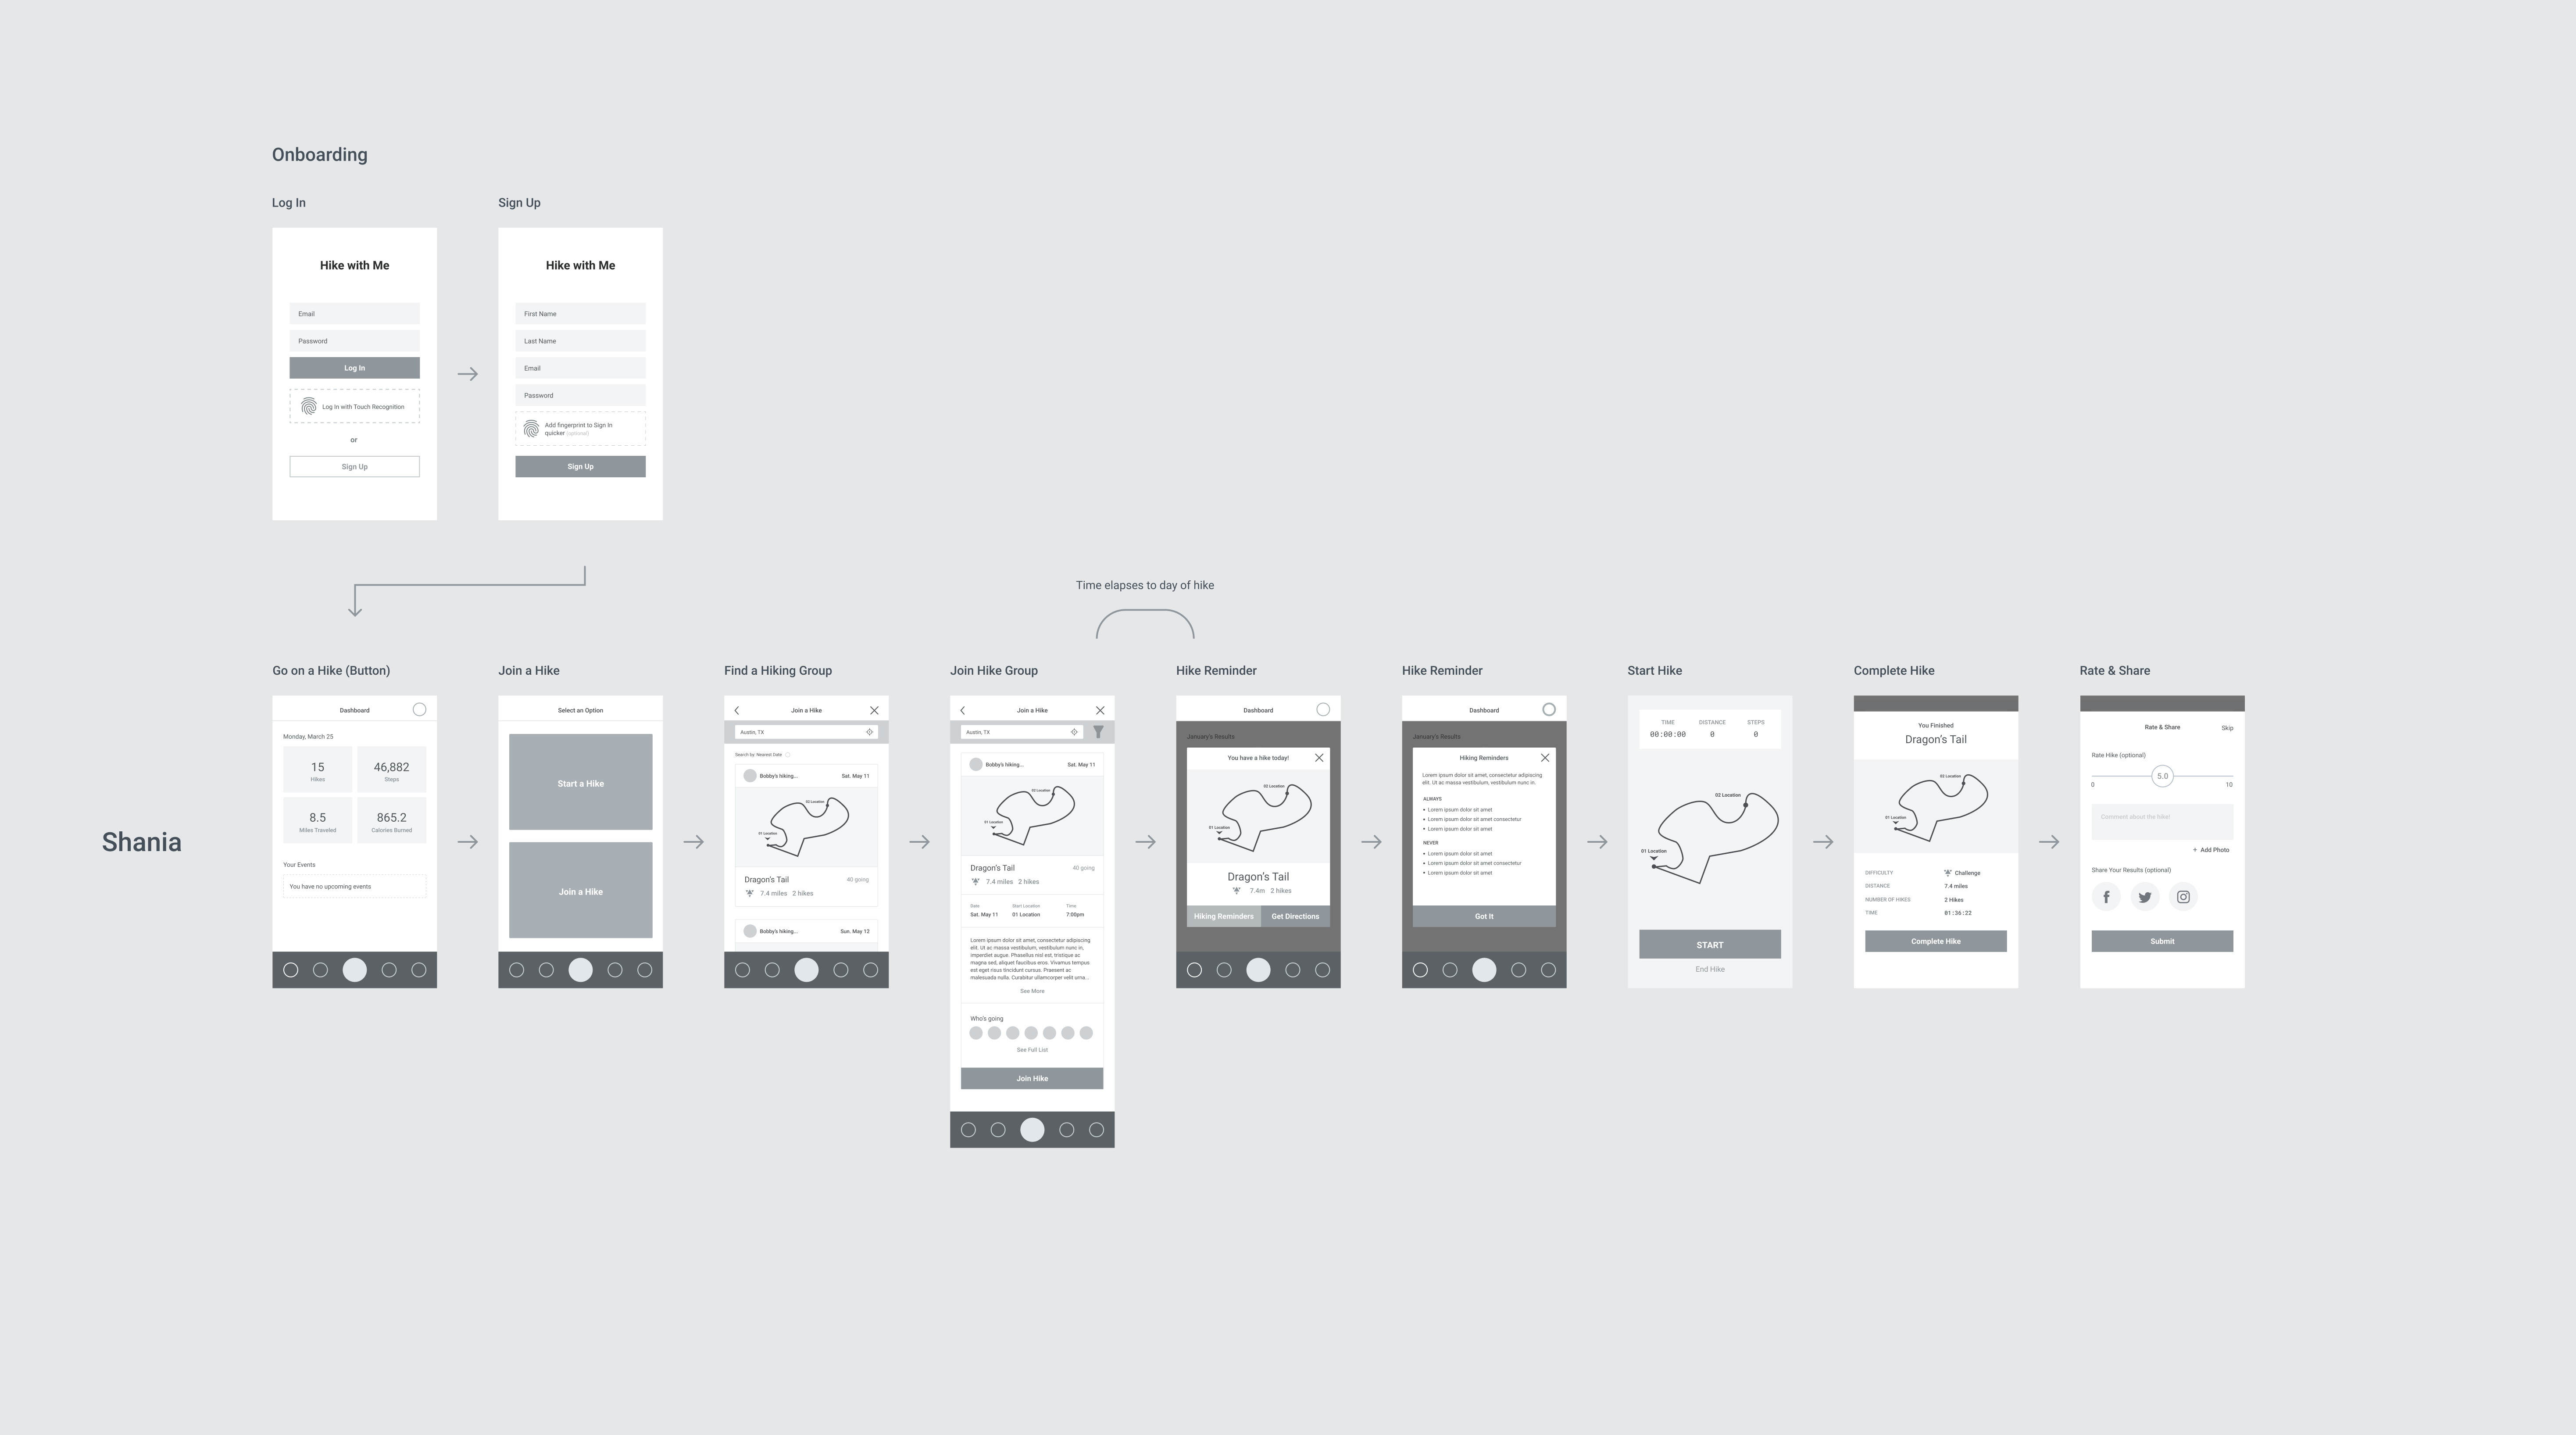 Wireframes of Shania's flow.